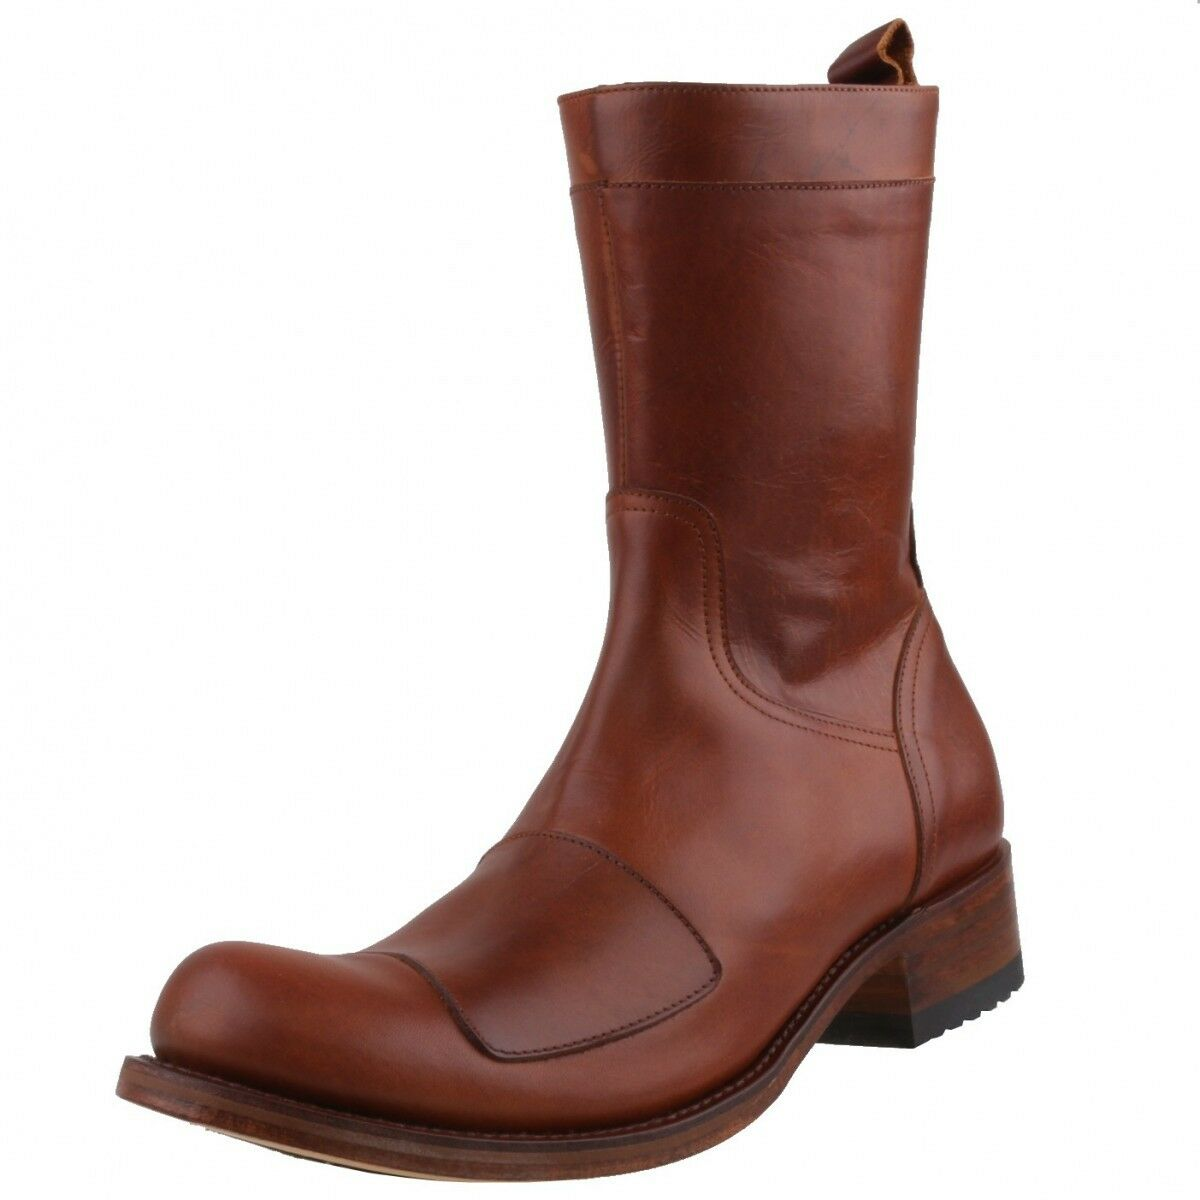 New Sendra Engineer Boots Men Boots 8358 Brown